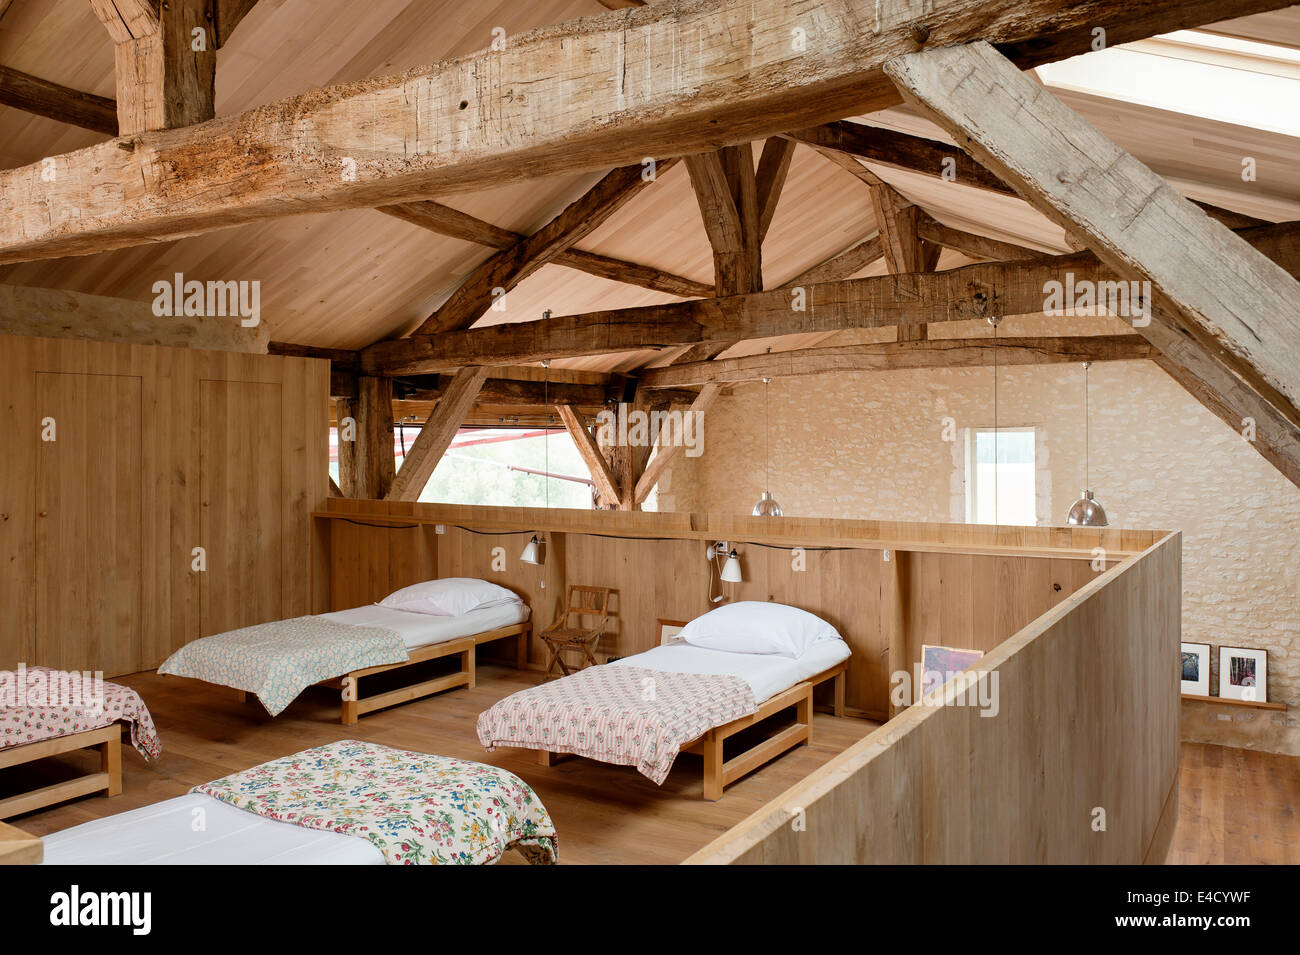 Open plan dormitory accommodation in converted barn with original timber beams - Stock Image